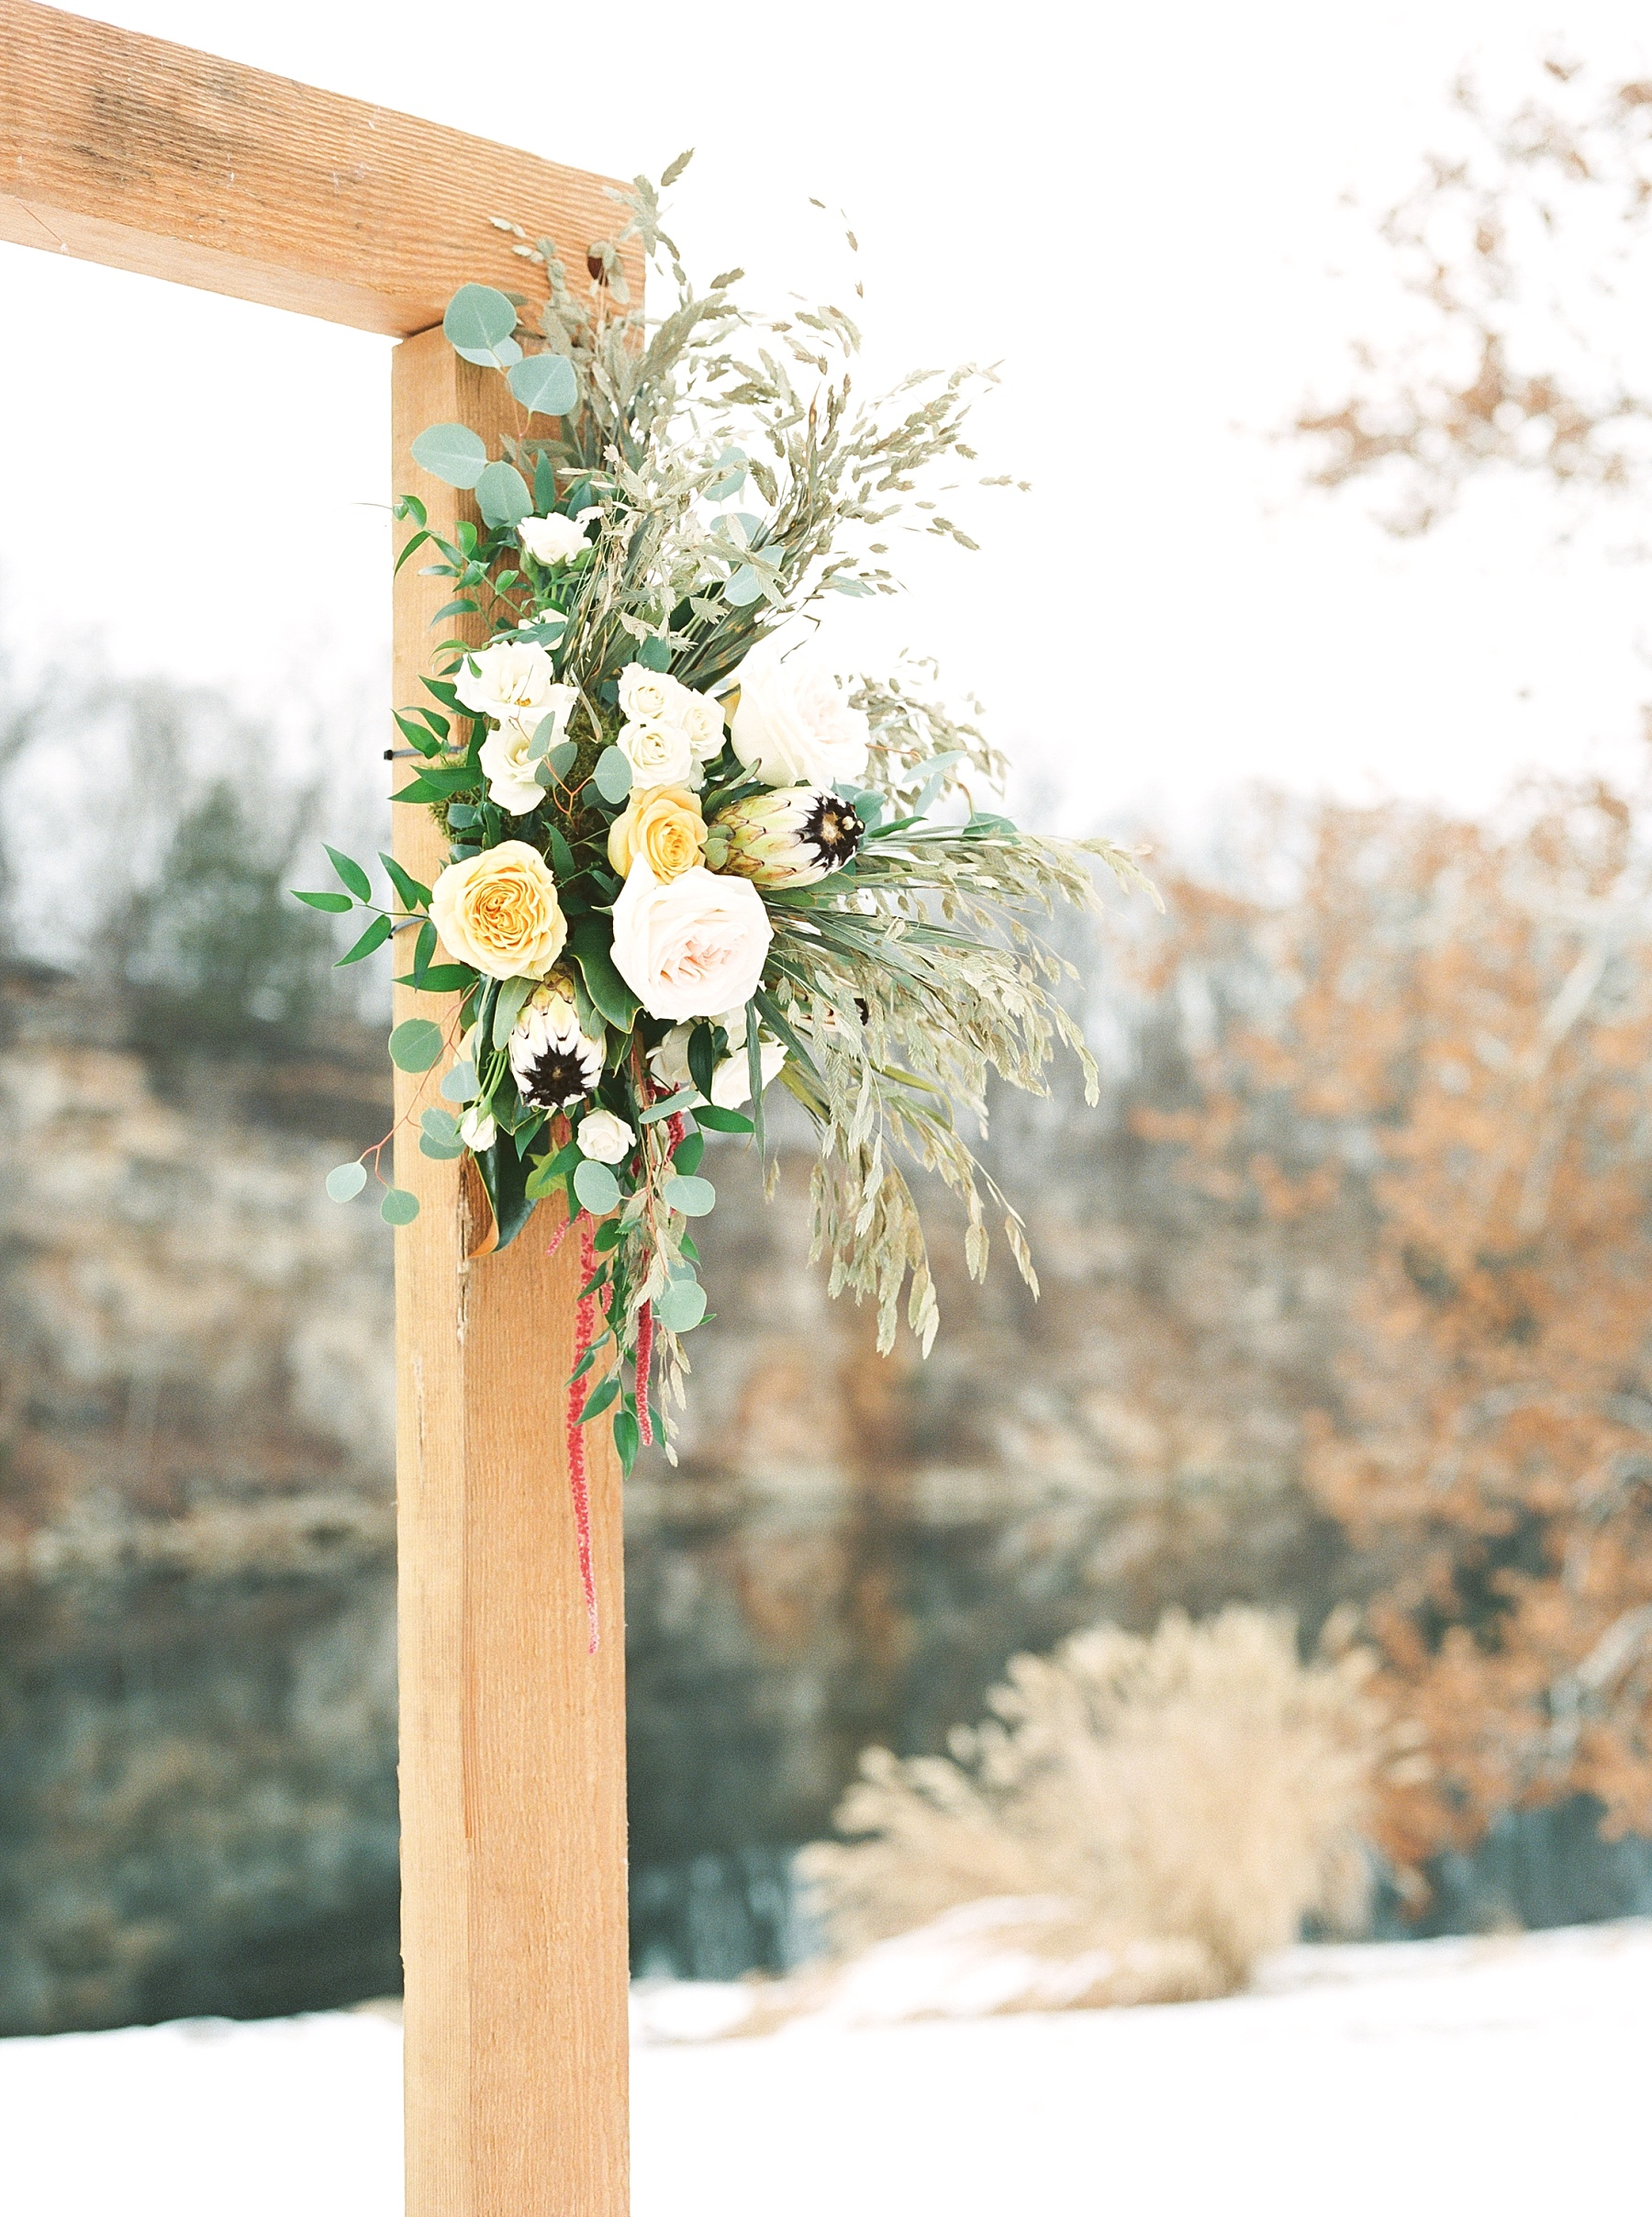 Snowy Winter Wedding at Wildcliff Events Lake With Earthy Jewel Tones and Organic Refined Style by Kelsi Kliethermes Photography Kansas City Missouri Wedding Photographer_0120.jpg